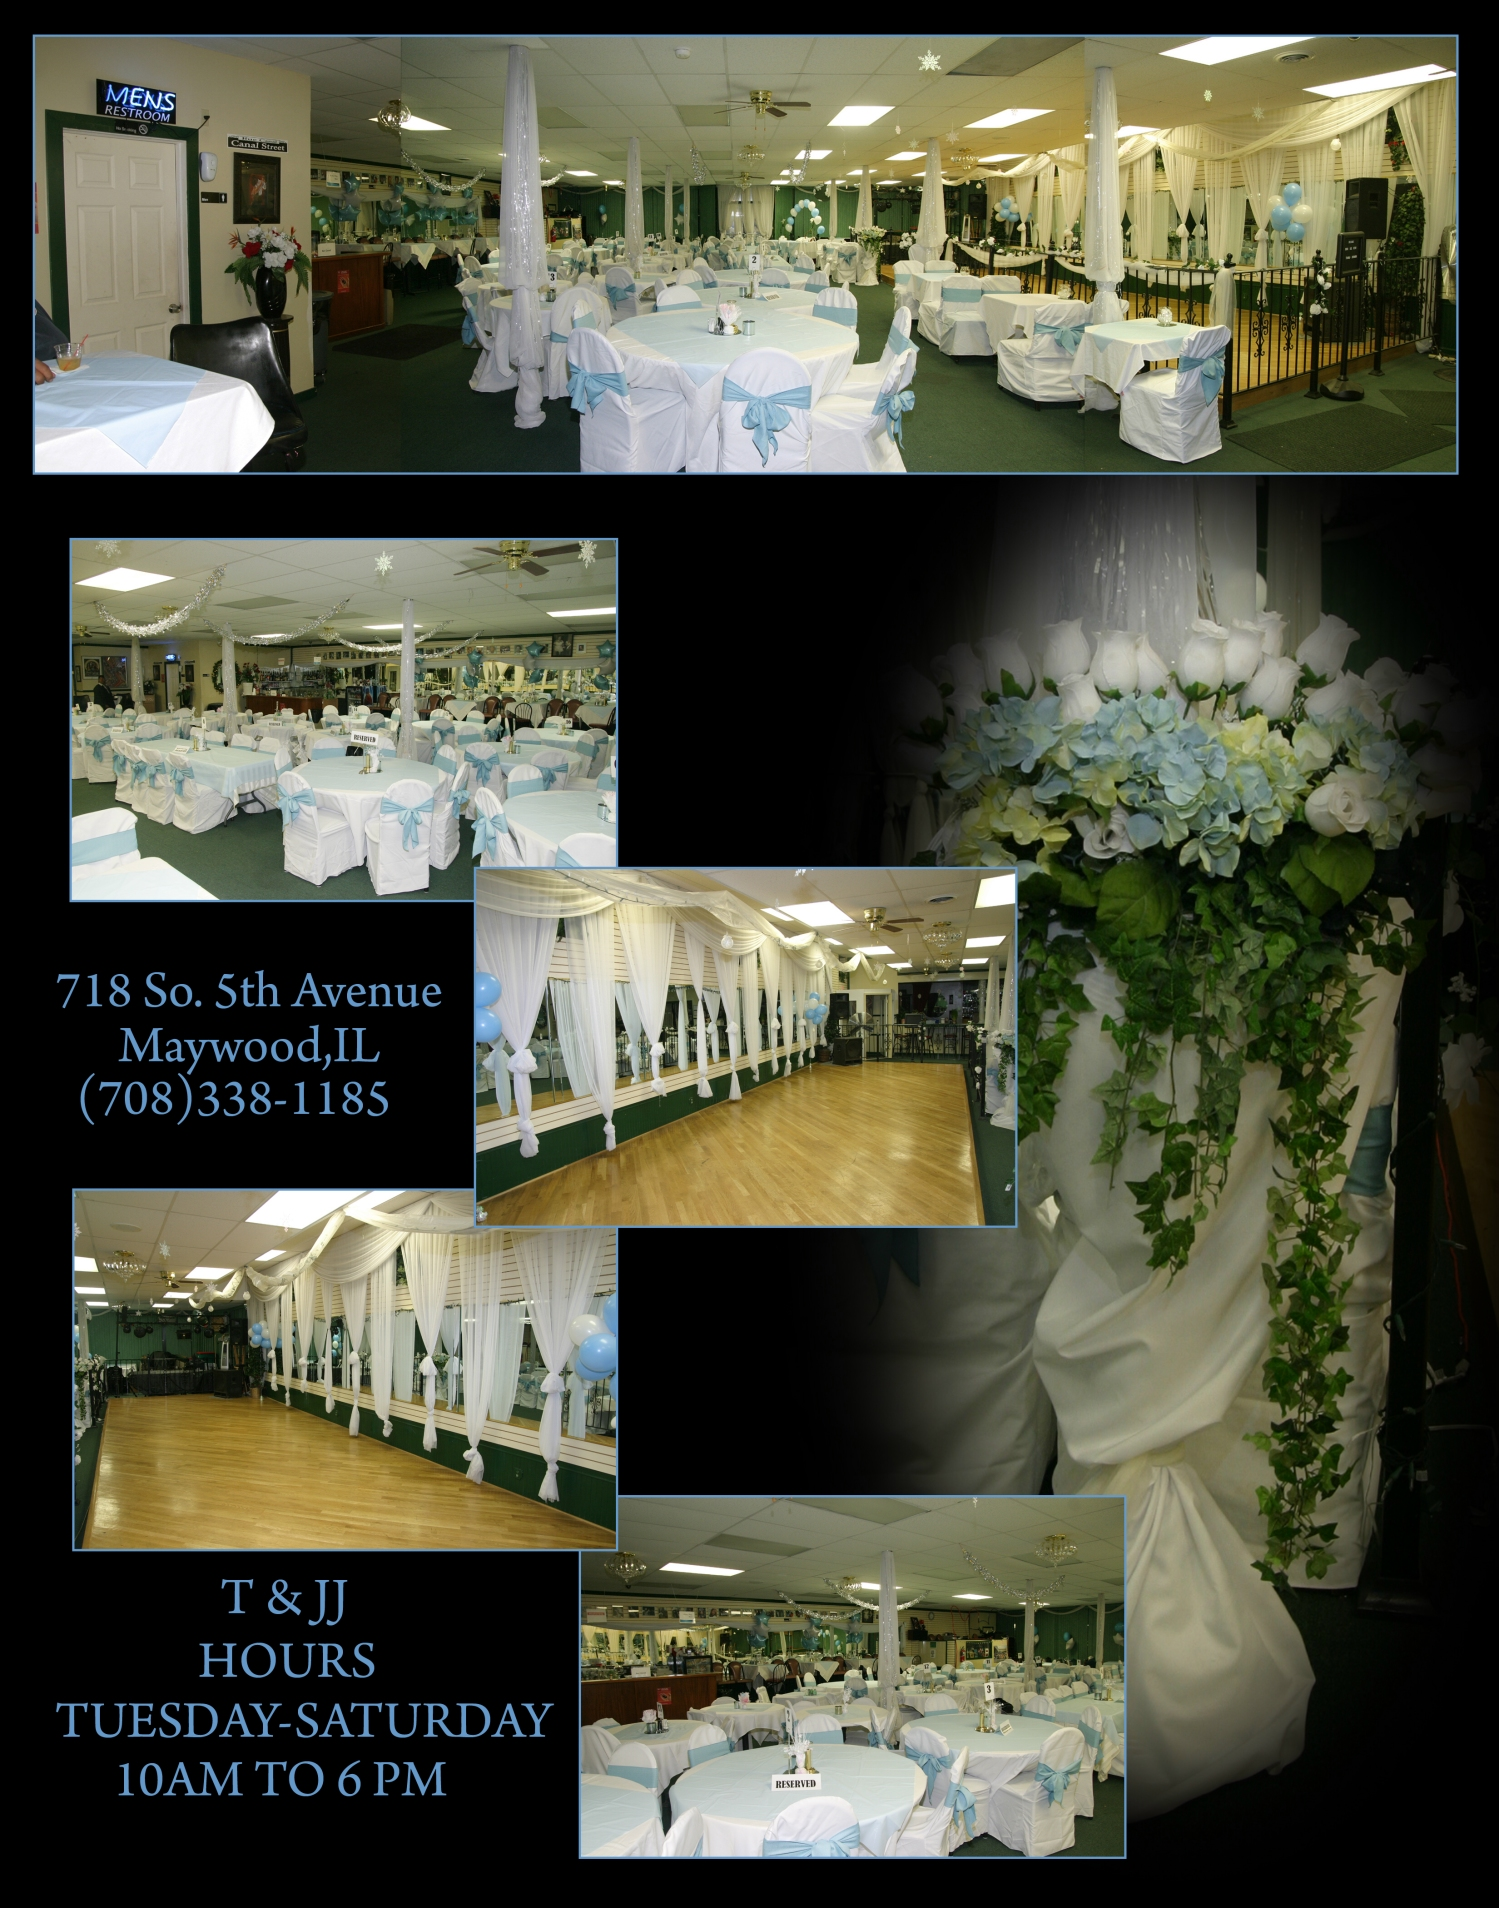 T Jj Banquet Hall Terms